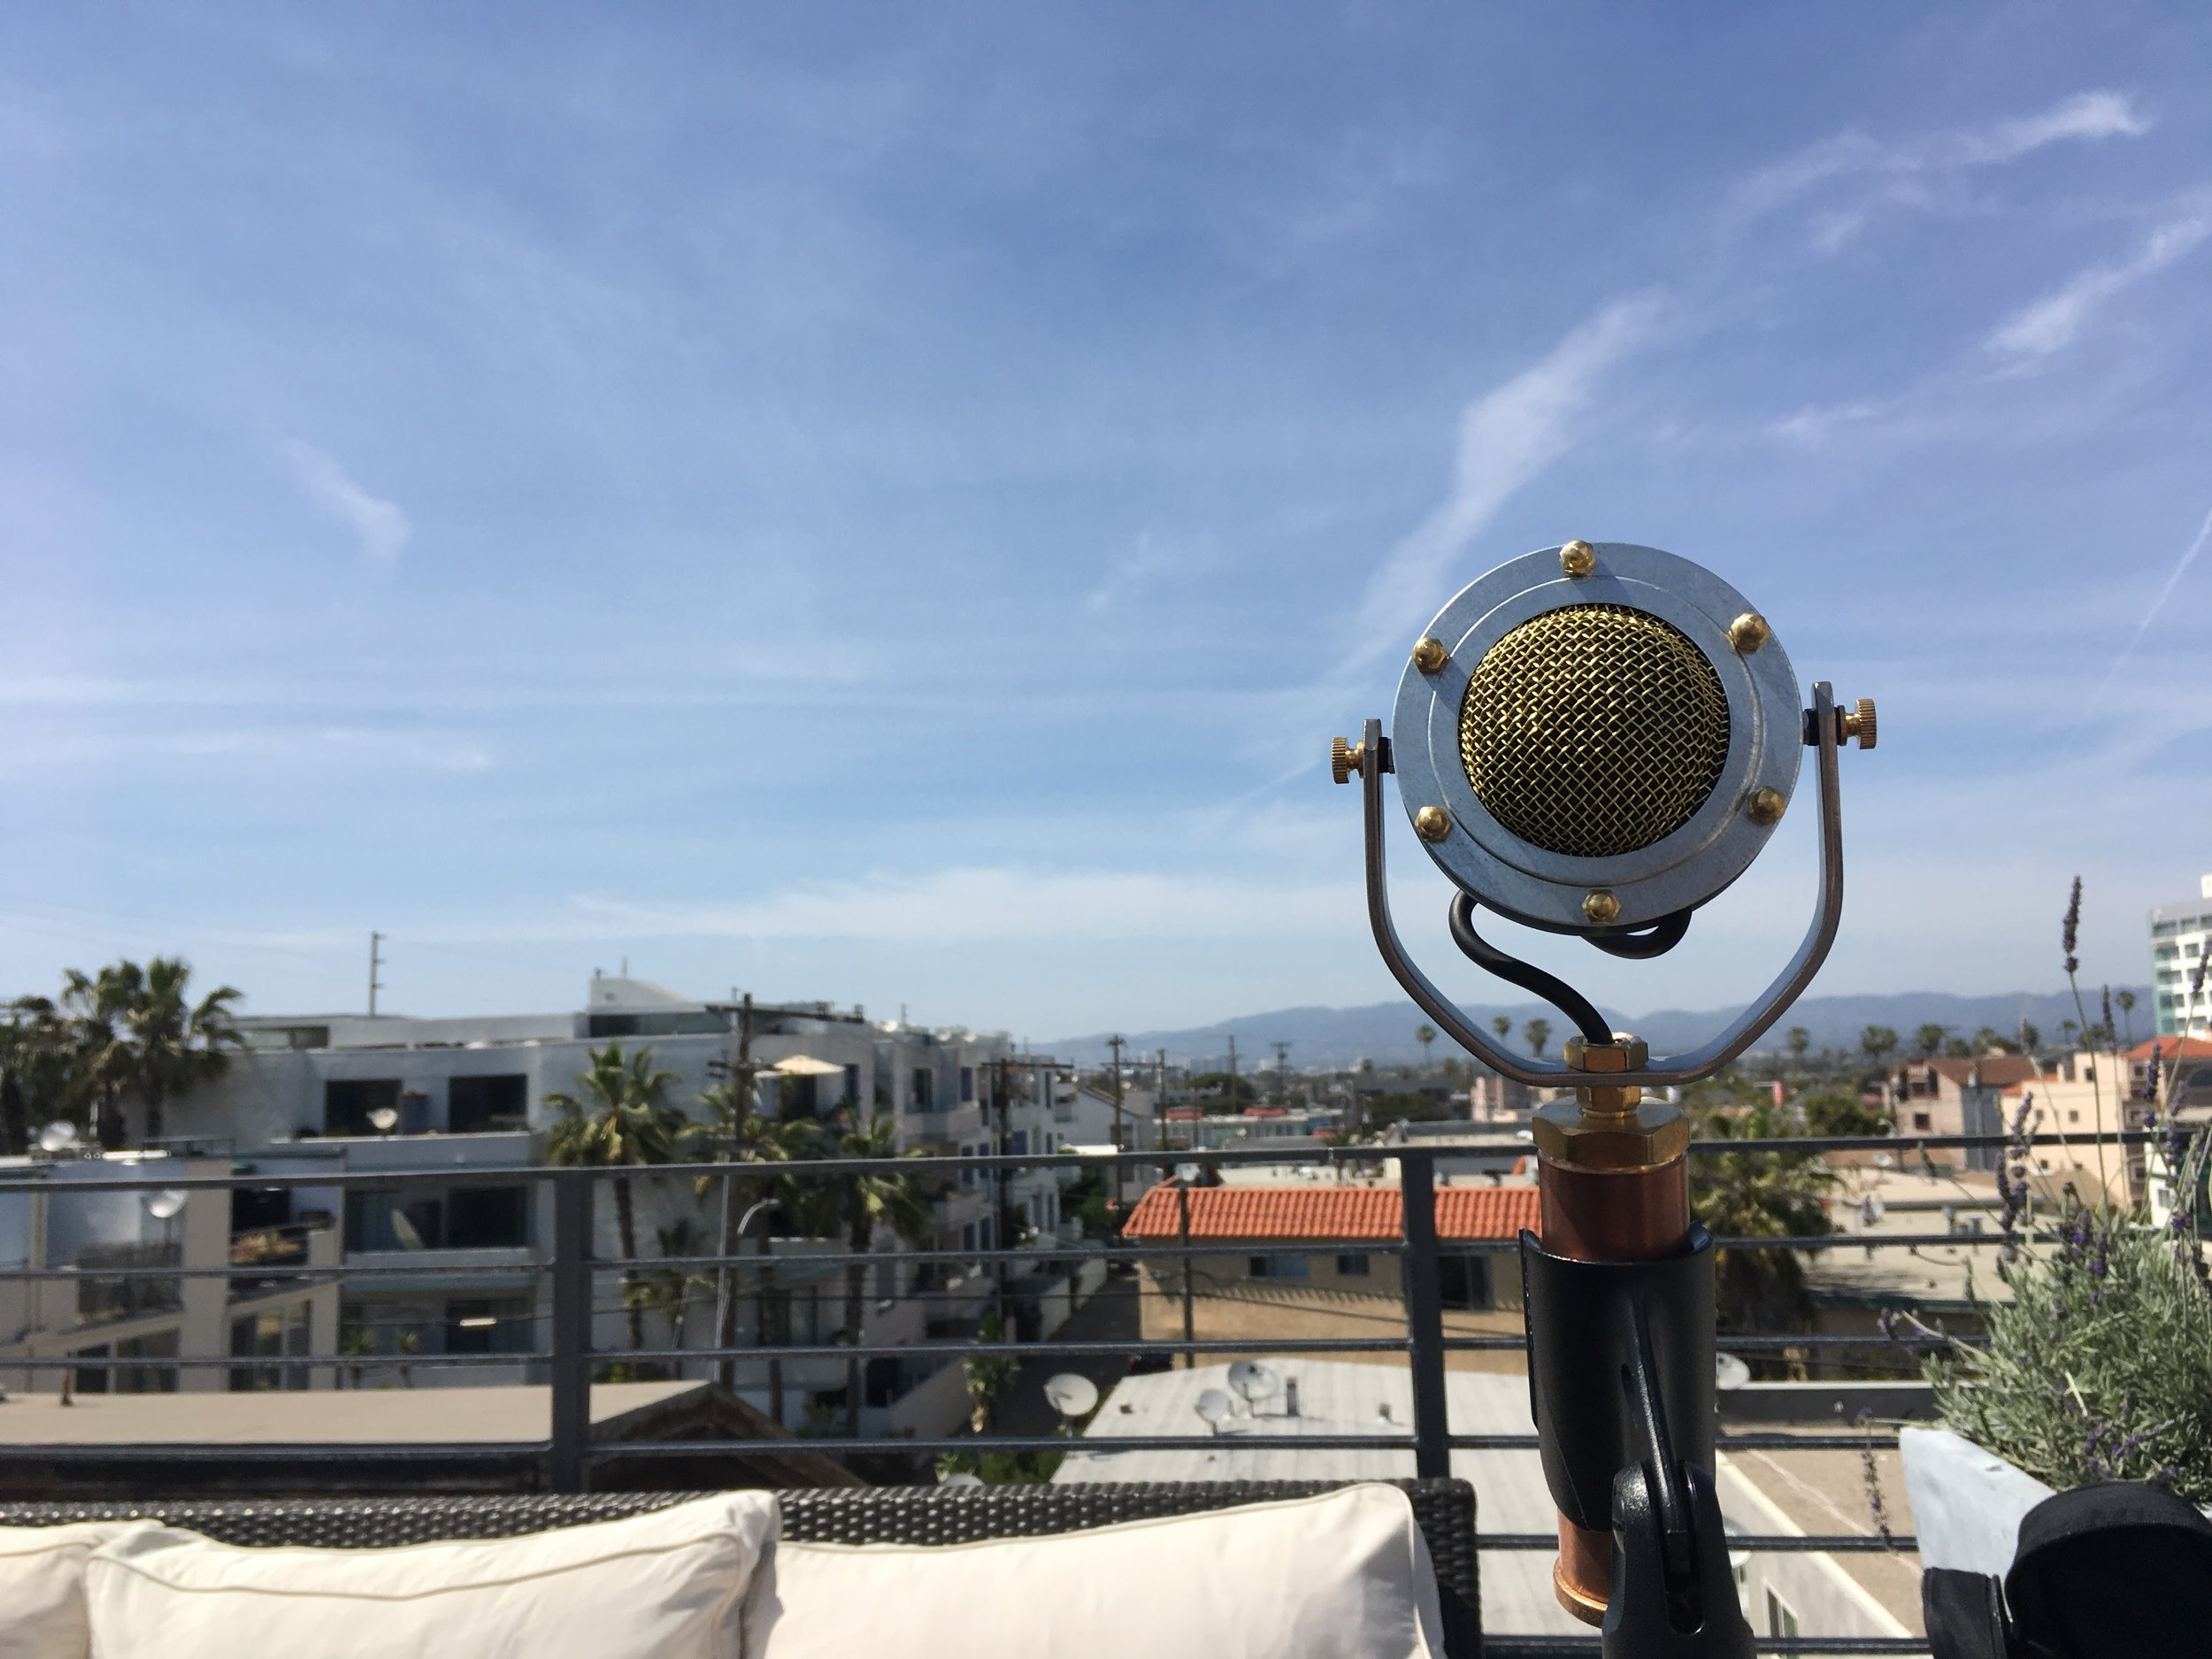 view from our most recent gig on a rooftop in venice beach (please pardon the tiny captions/ gotta switch templates to fix this!)